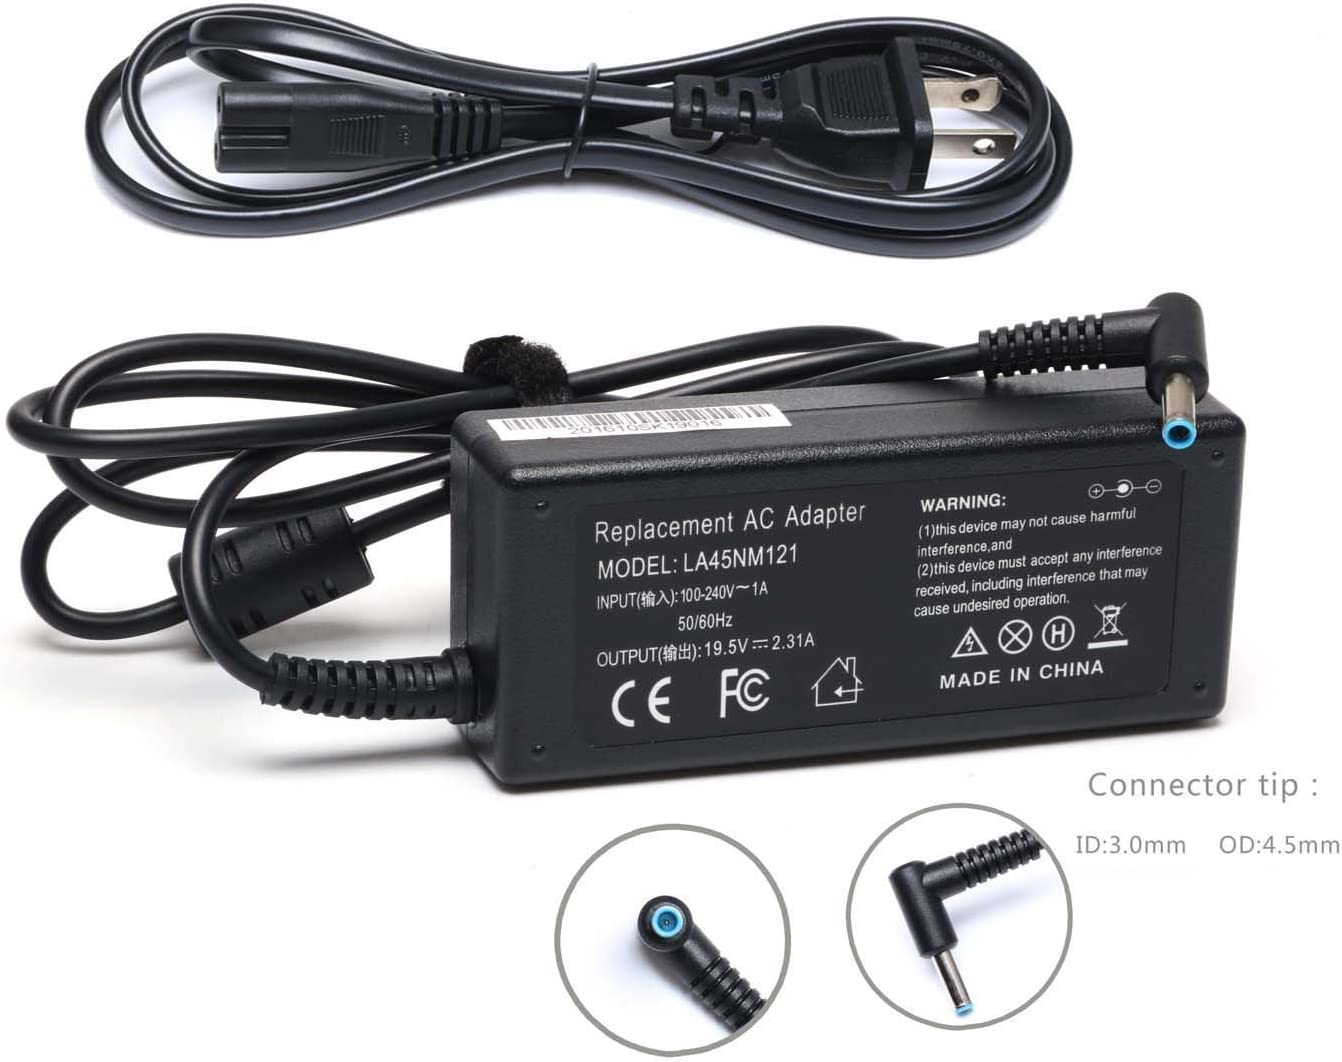 19.5V 2.31A 45W Emaks Ac Adapter/Laptop Charger/Power Supply for HP Laptop 14-CF0000 15-DA0000 15-CC000 Series:14-cf0012dx 14-cf0014dx 14-cf0013dx cf0006dx 15-da002dx 15-da0073ms da0085od da0012dx